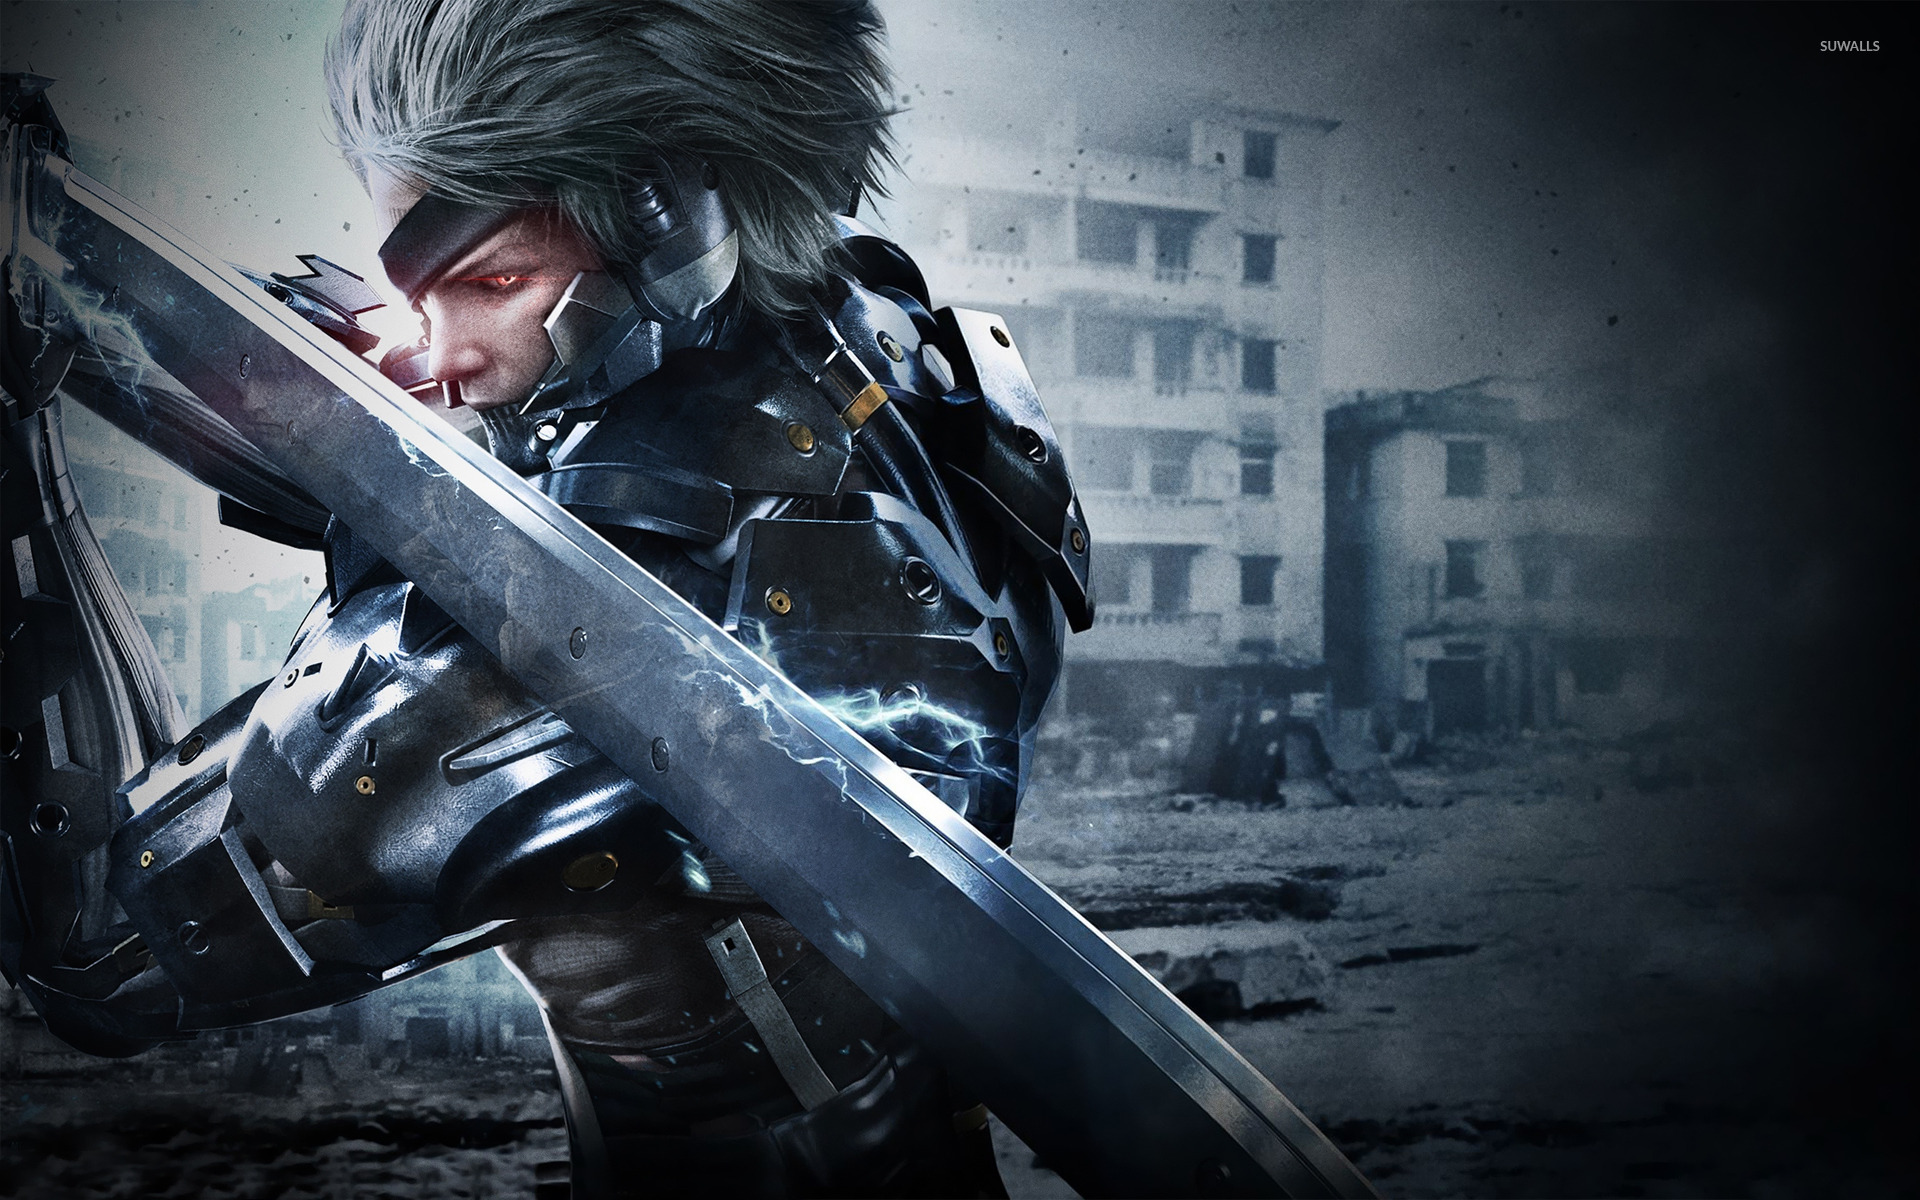 Metal gear rising revengeance 2 wallpaper game wallpapers metal gear rising revengeance 2 wallpaper voltagebd Image collections